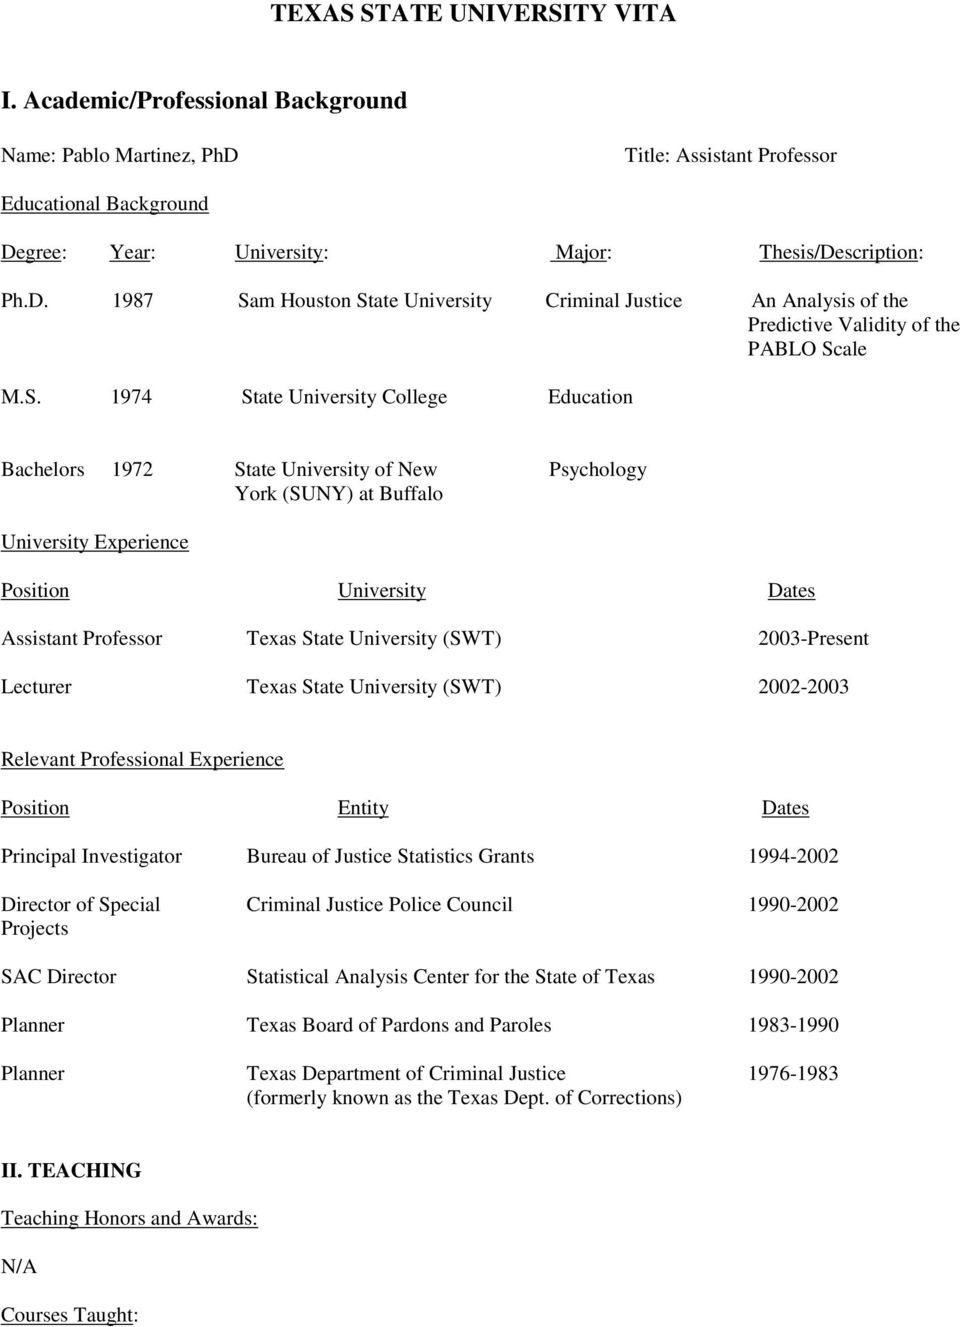 S. 1974 State University College Education Bachelors 1972 State University of New Psychology York (SUNY) at Buffalo University Experience Position University Dates Assistant Professor Texas State